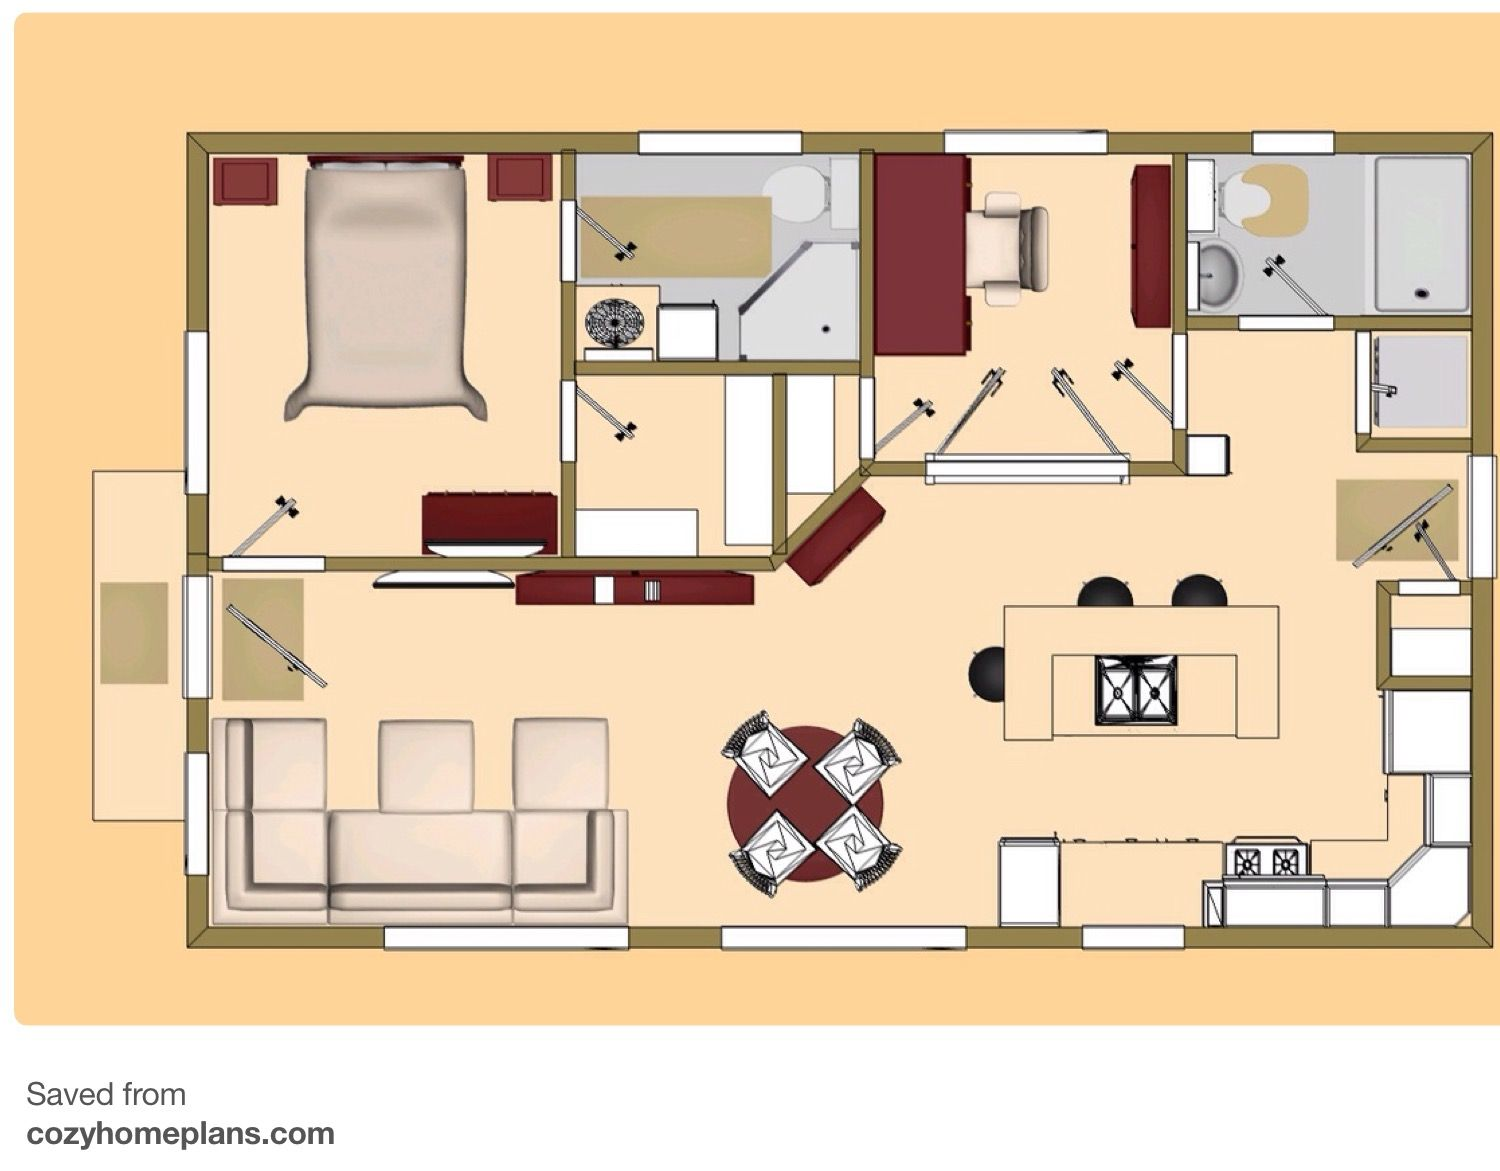 Pin By Deborah Points On Deb S Tiny House Small House Floor Plans Tiny House Floor Plans Tiny House Plans